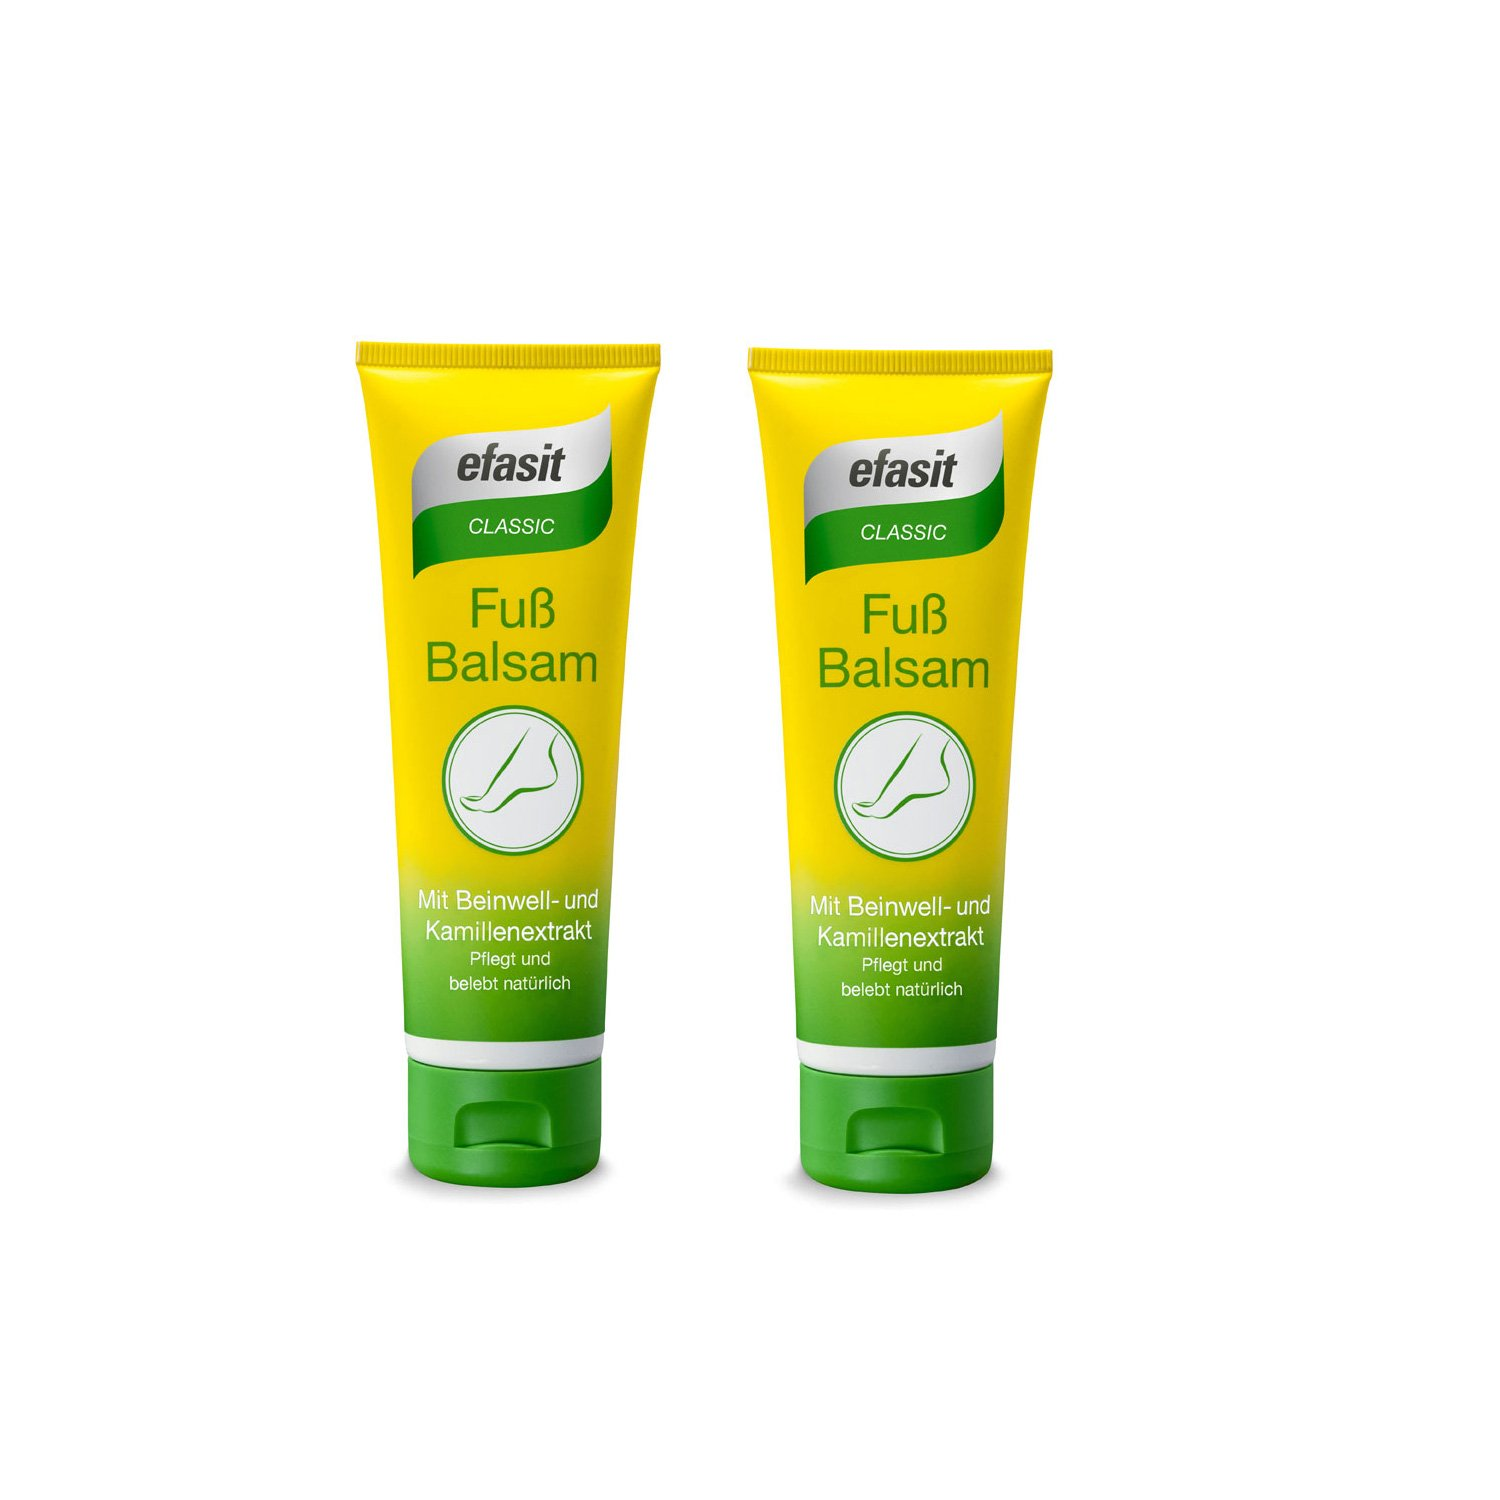 EFASIT Classic Foot Balsam - for the Everyday Requirement Pack of 2 (2x75ml) Togal